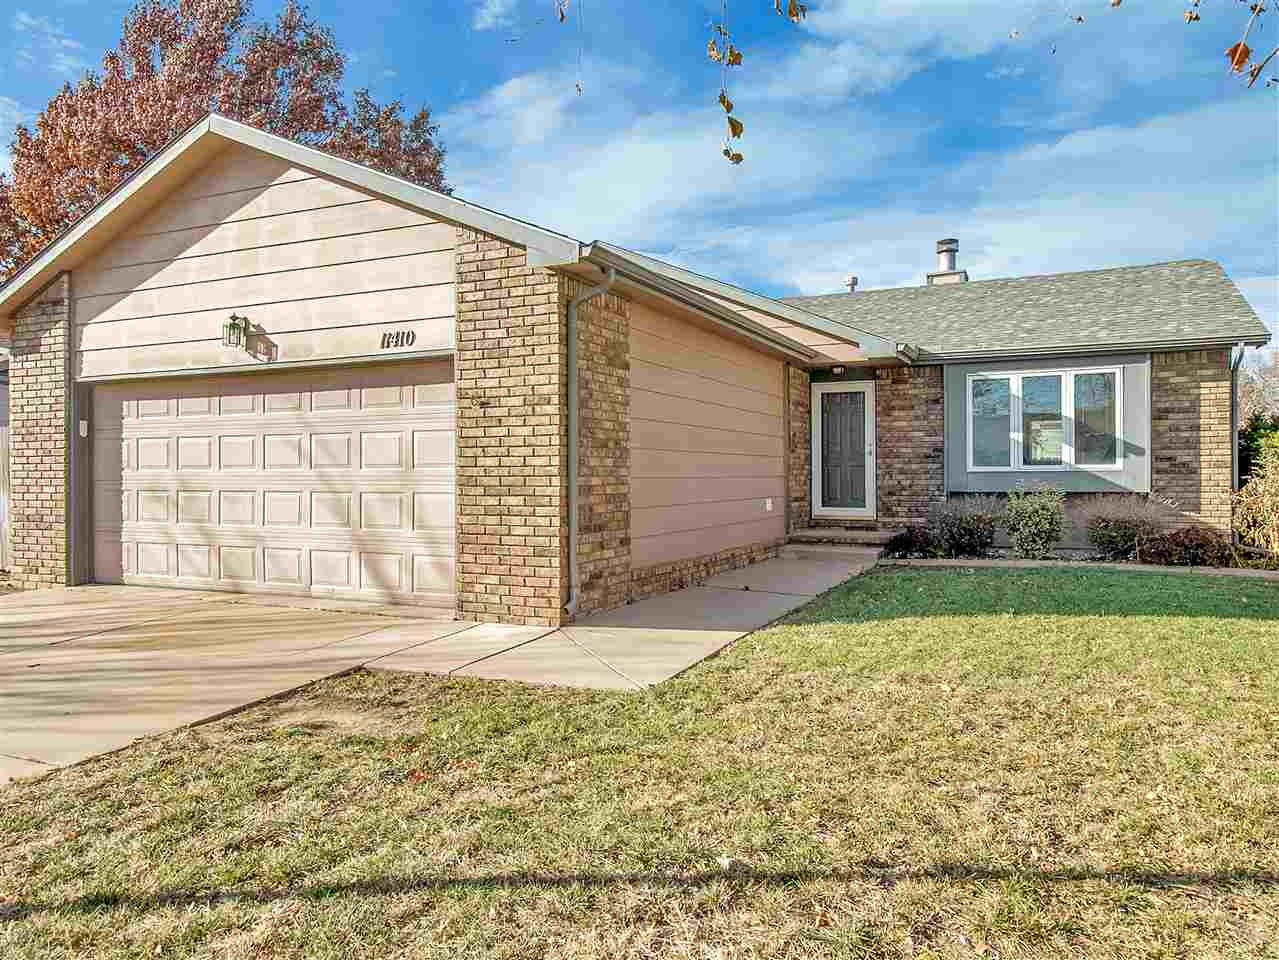 GREAT STARTER HOME IN NORTH WEST WICHITA.  FEATURES 3 BEDROOM, 2 BATH, 2 CAR GARAGE, WITH PRIVACY FE